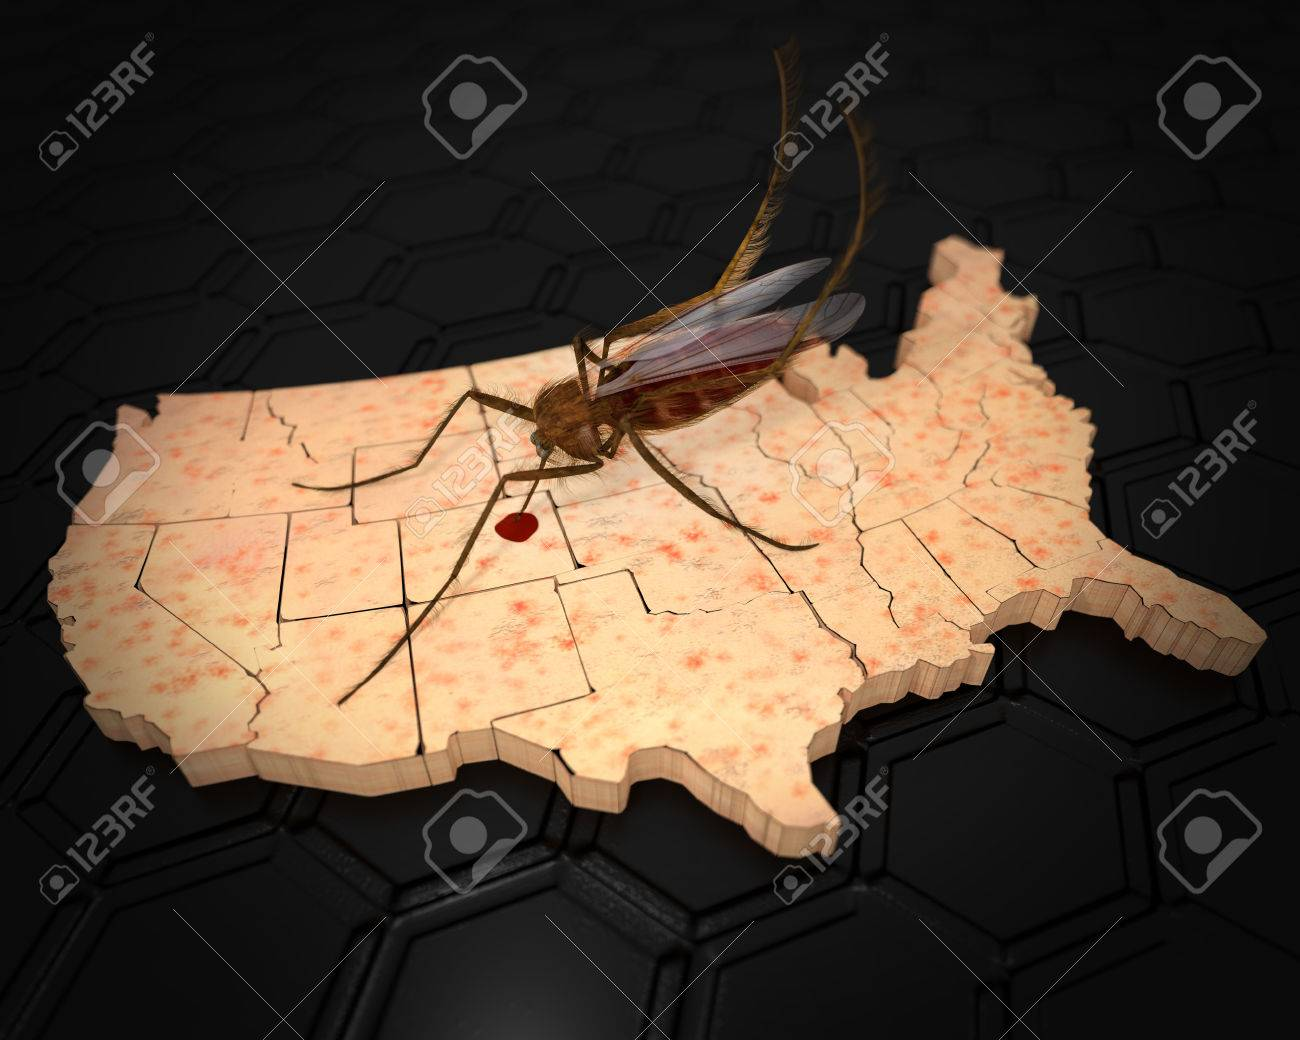 an ilration related to the outbreak of the zika virus in the us with a mosquito